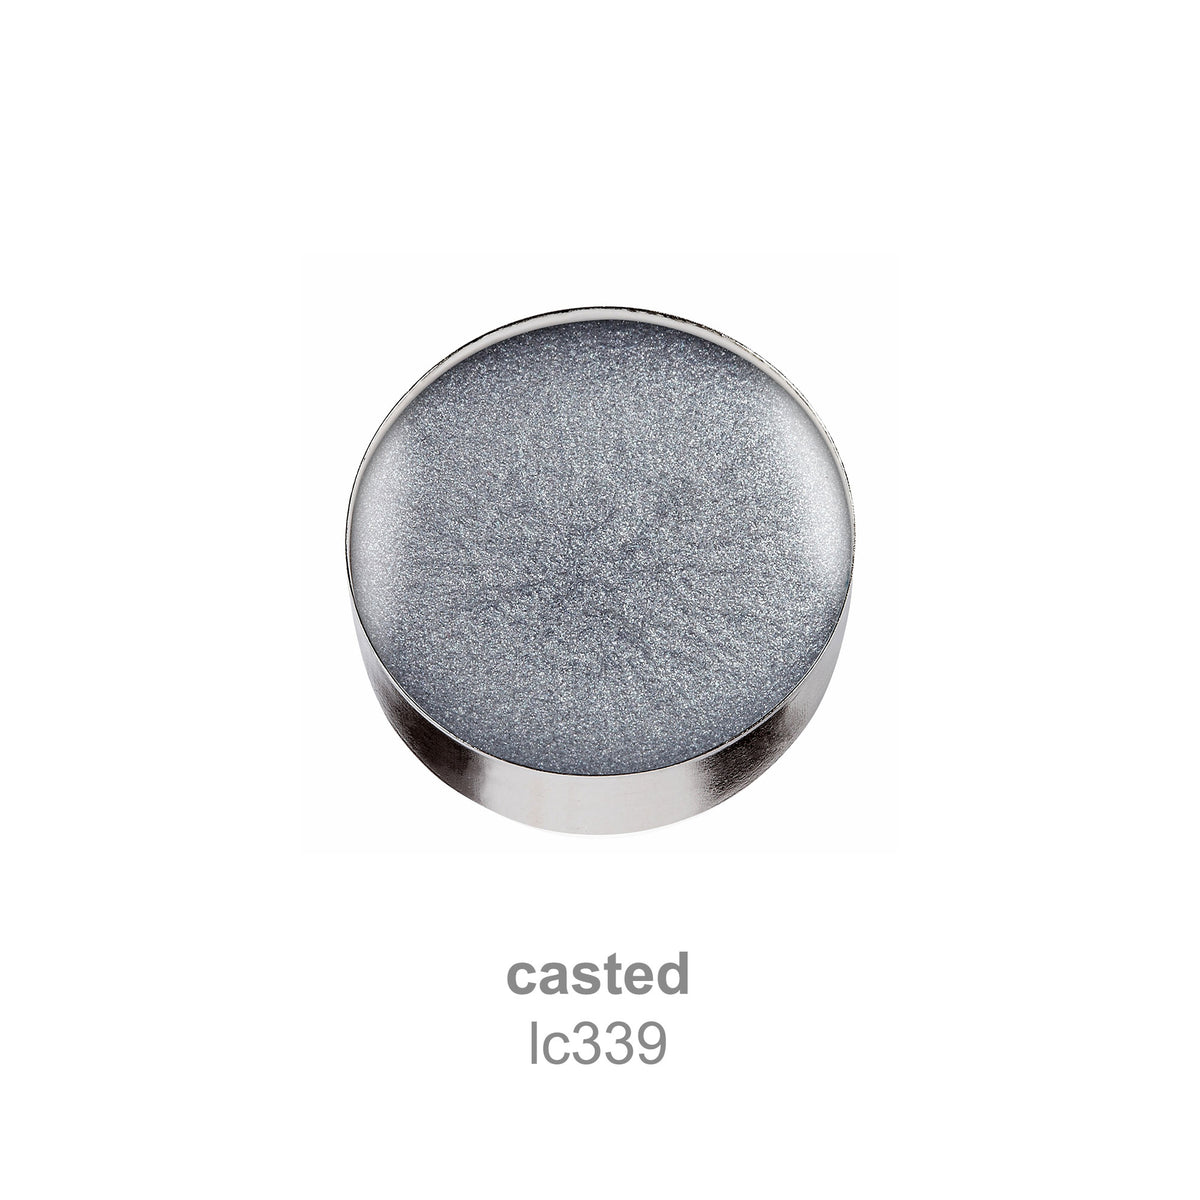 casted (lc339)